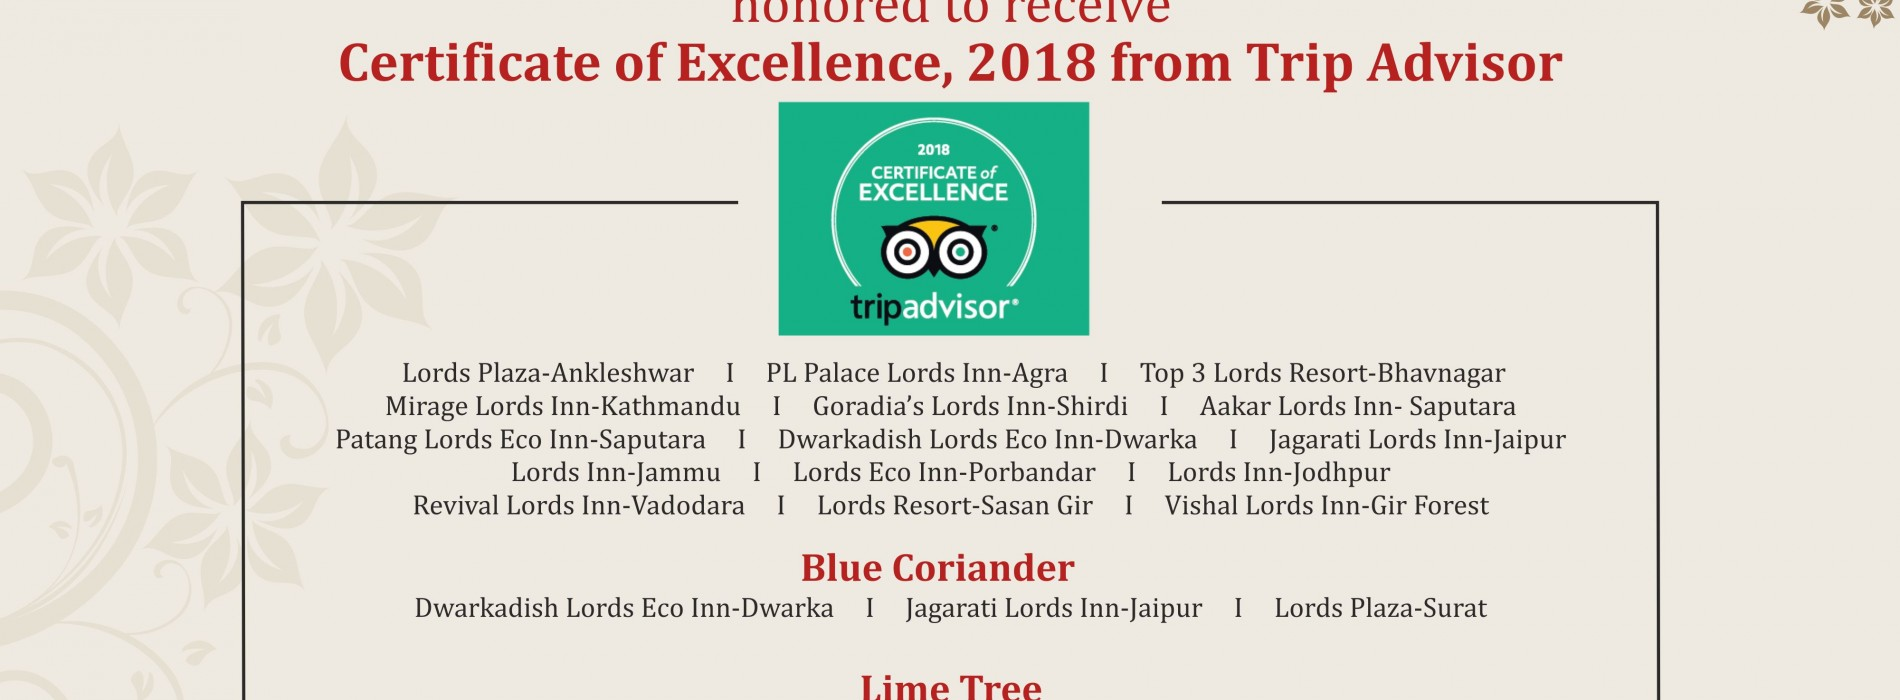 Lords Hotels & Resorts receives TripAdvisor Certificate of Excellence